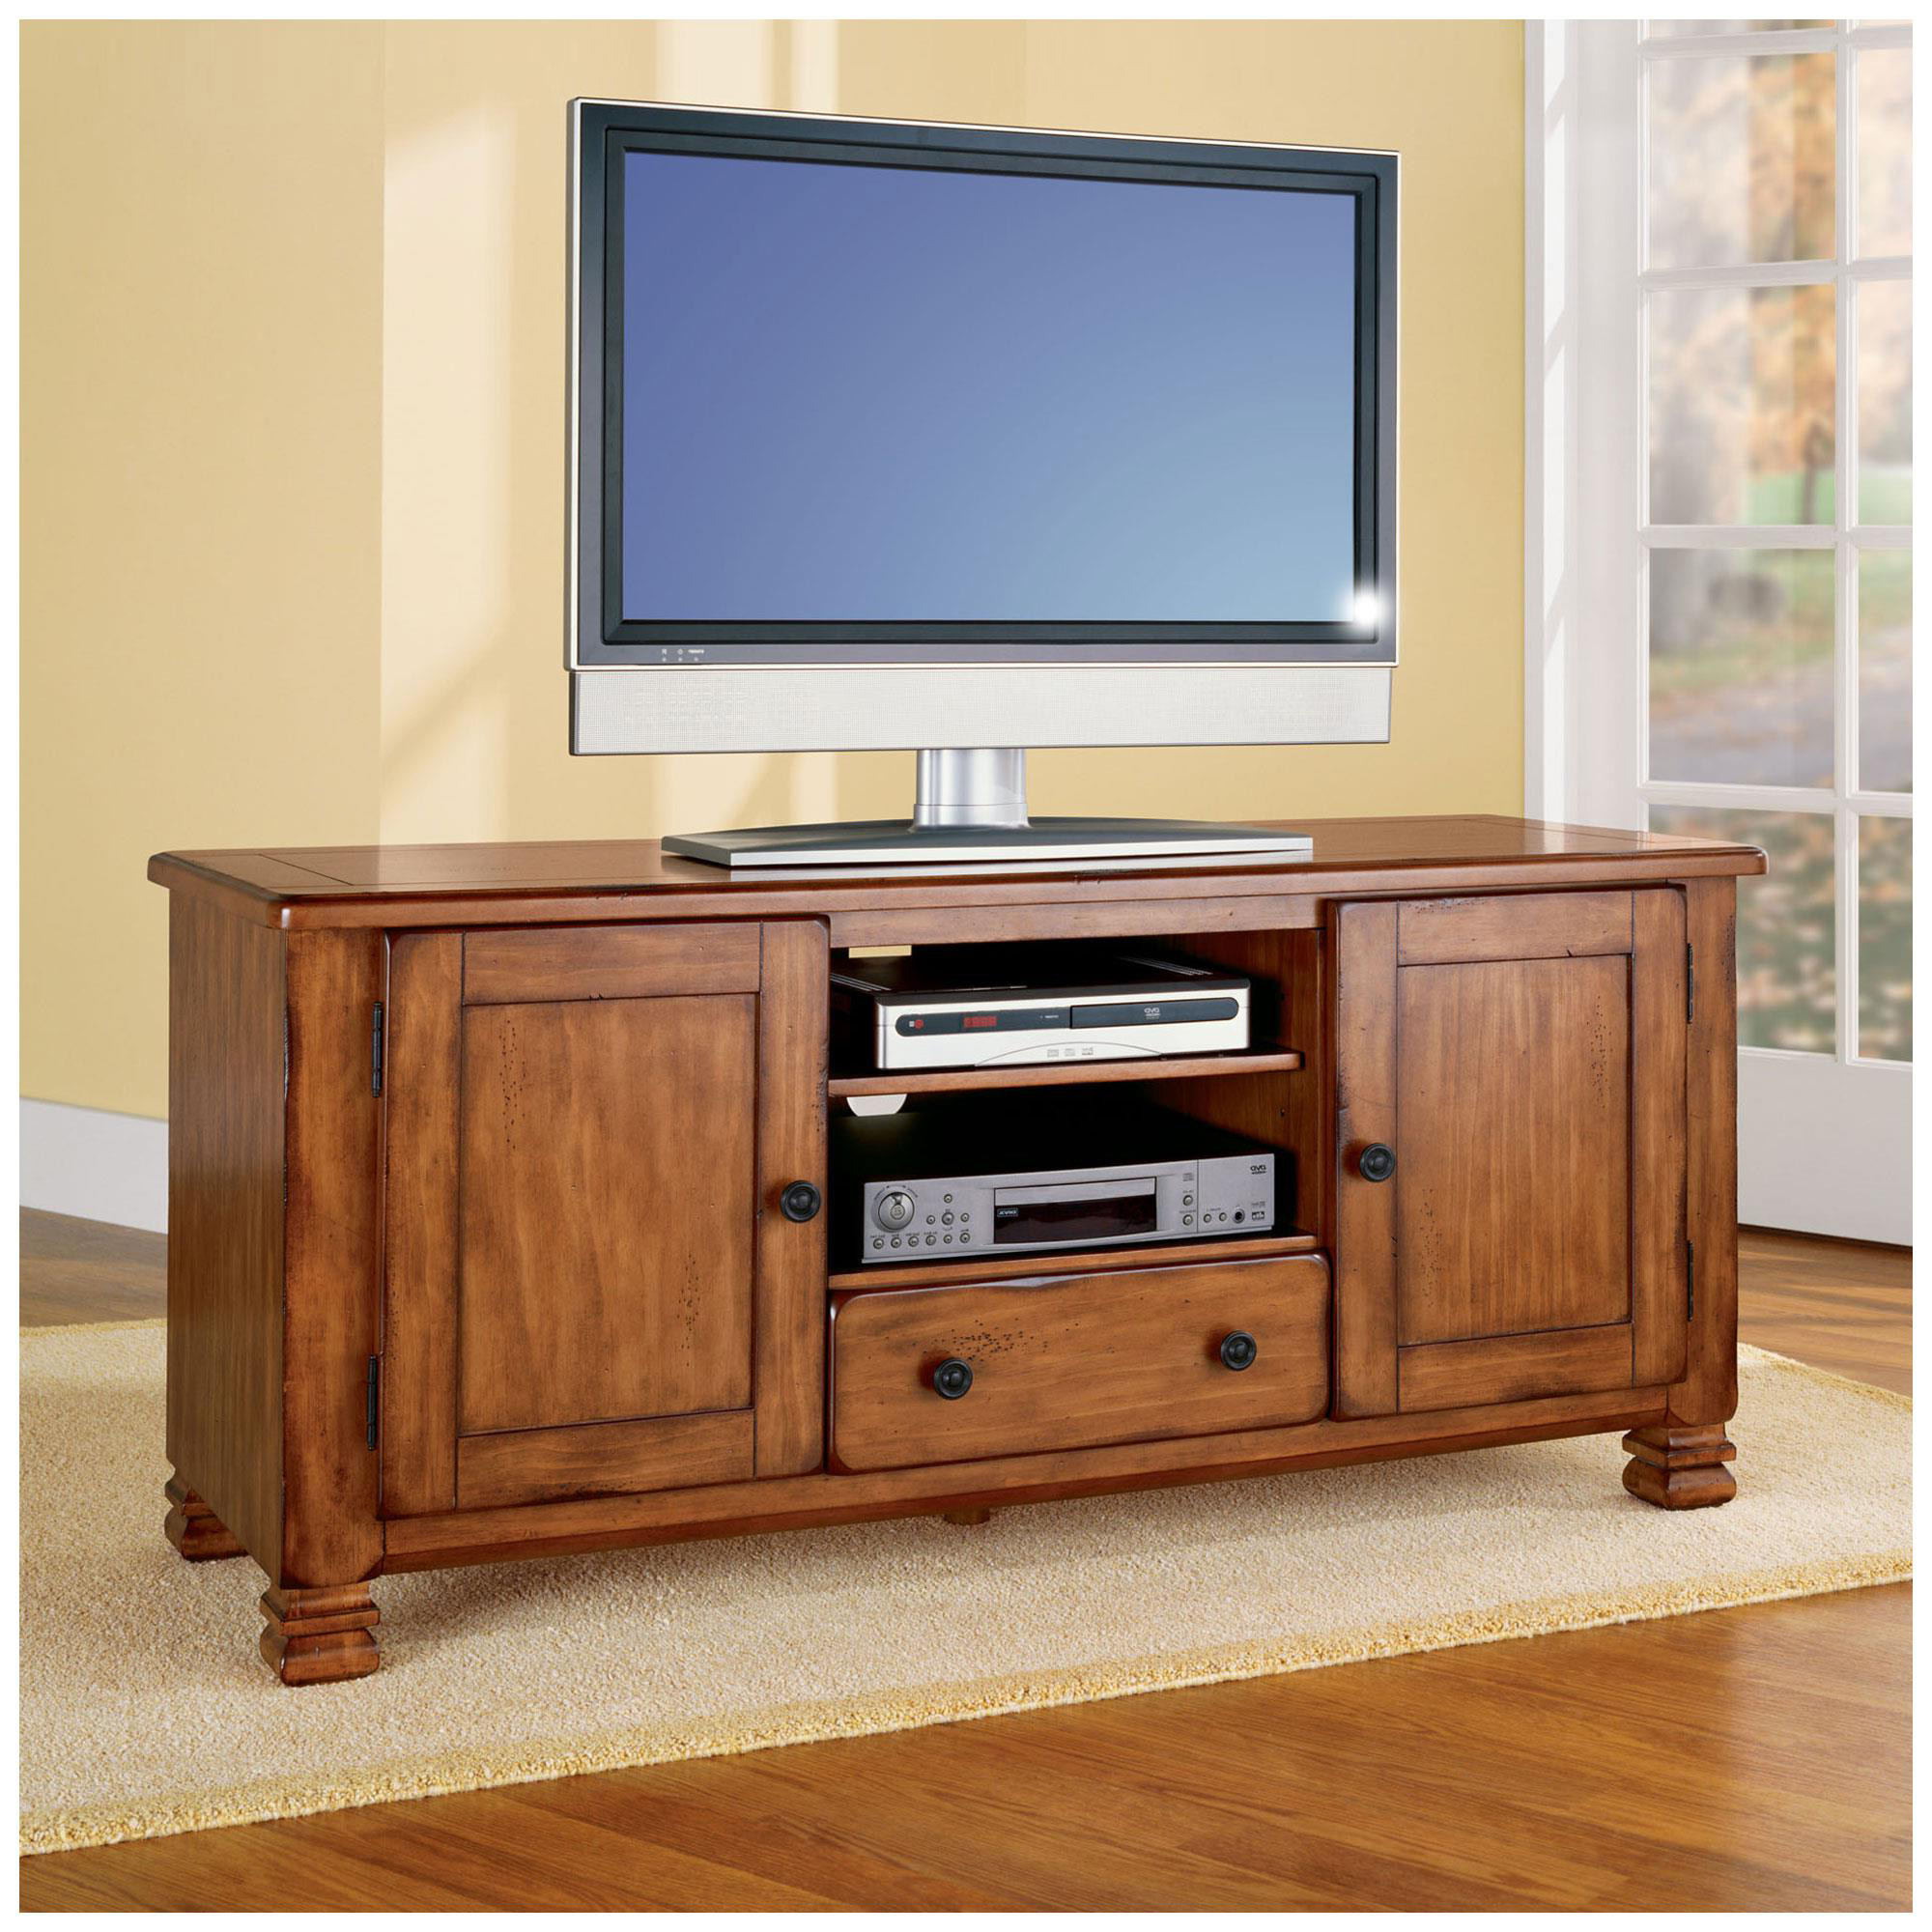 Preferred Oak Tv Stands With Regard To Beautiful Oak Tv Stands For A Beautiful Home – Furnish Ideas (Gallery 14 of 20)